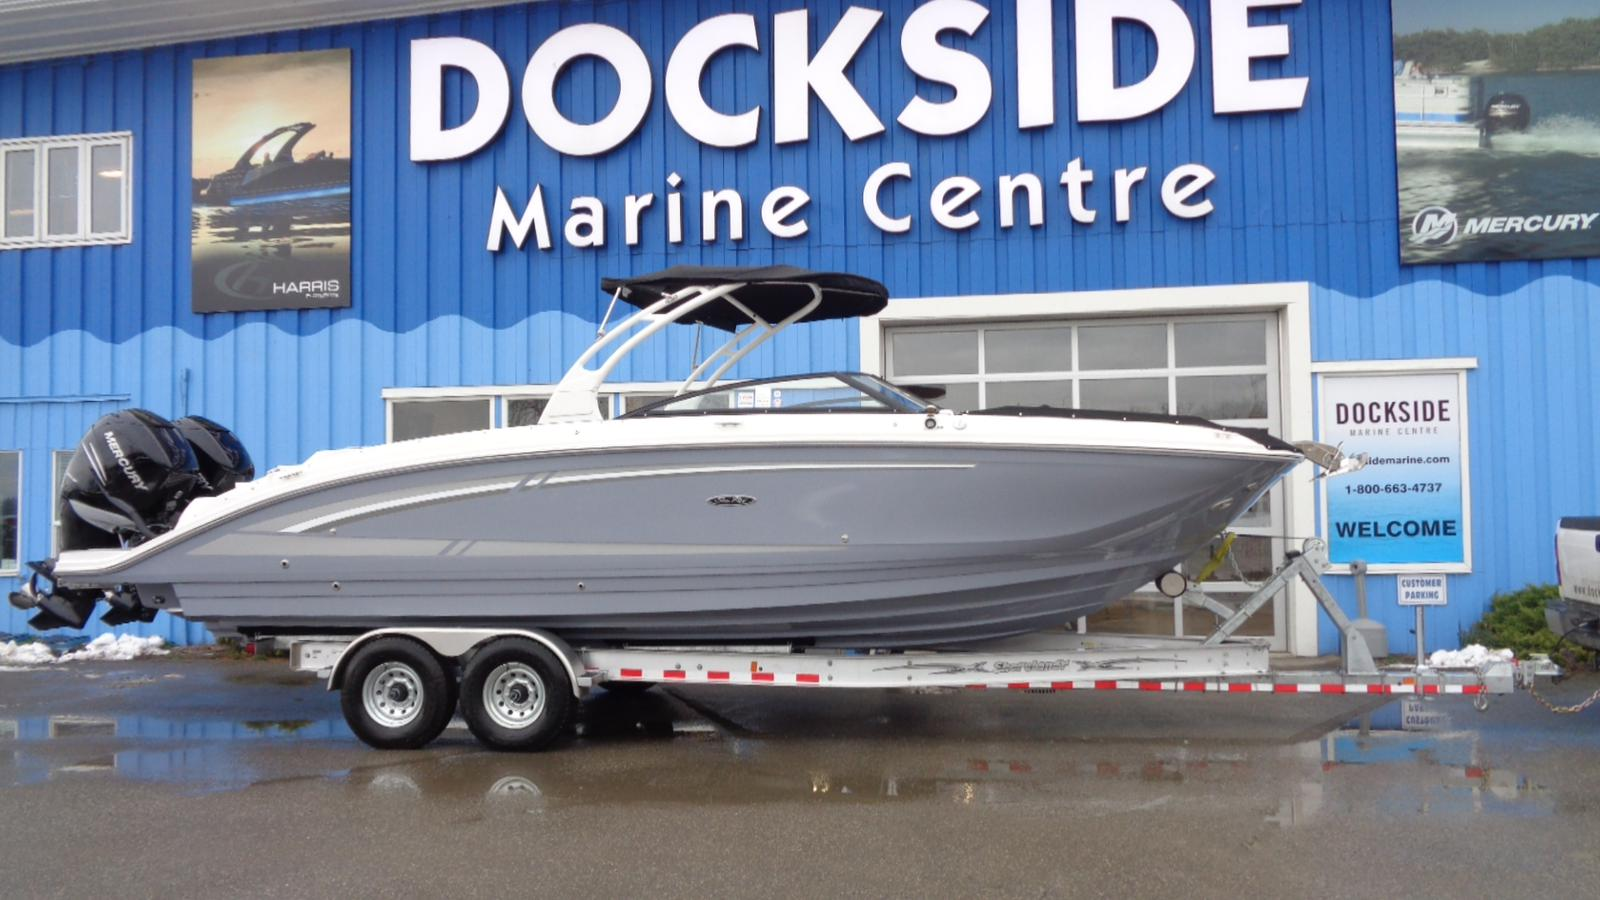 For Sale: 2017 Sea Ray Sdx 290 Outboard 30ft<br/>Dockside Marine Centre, LTD.